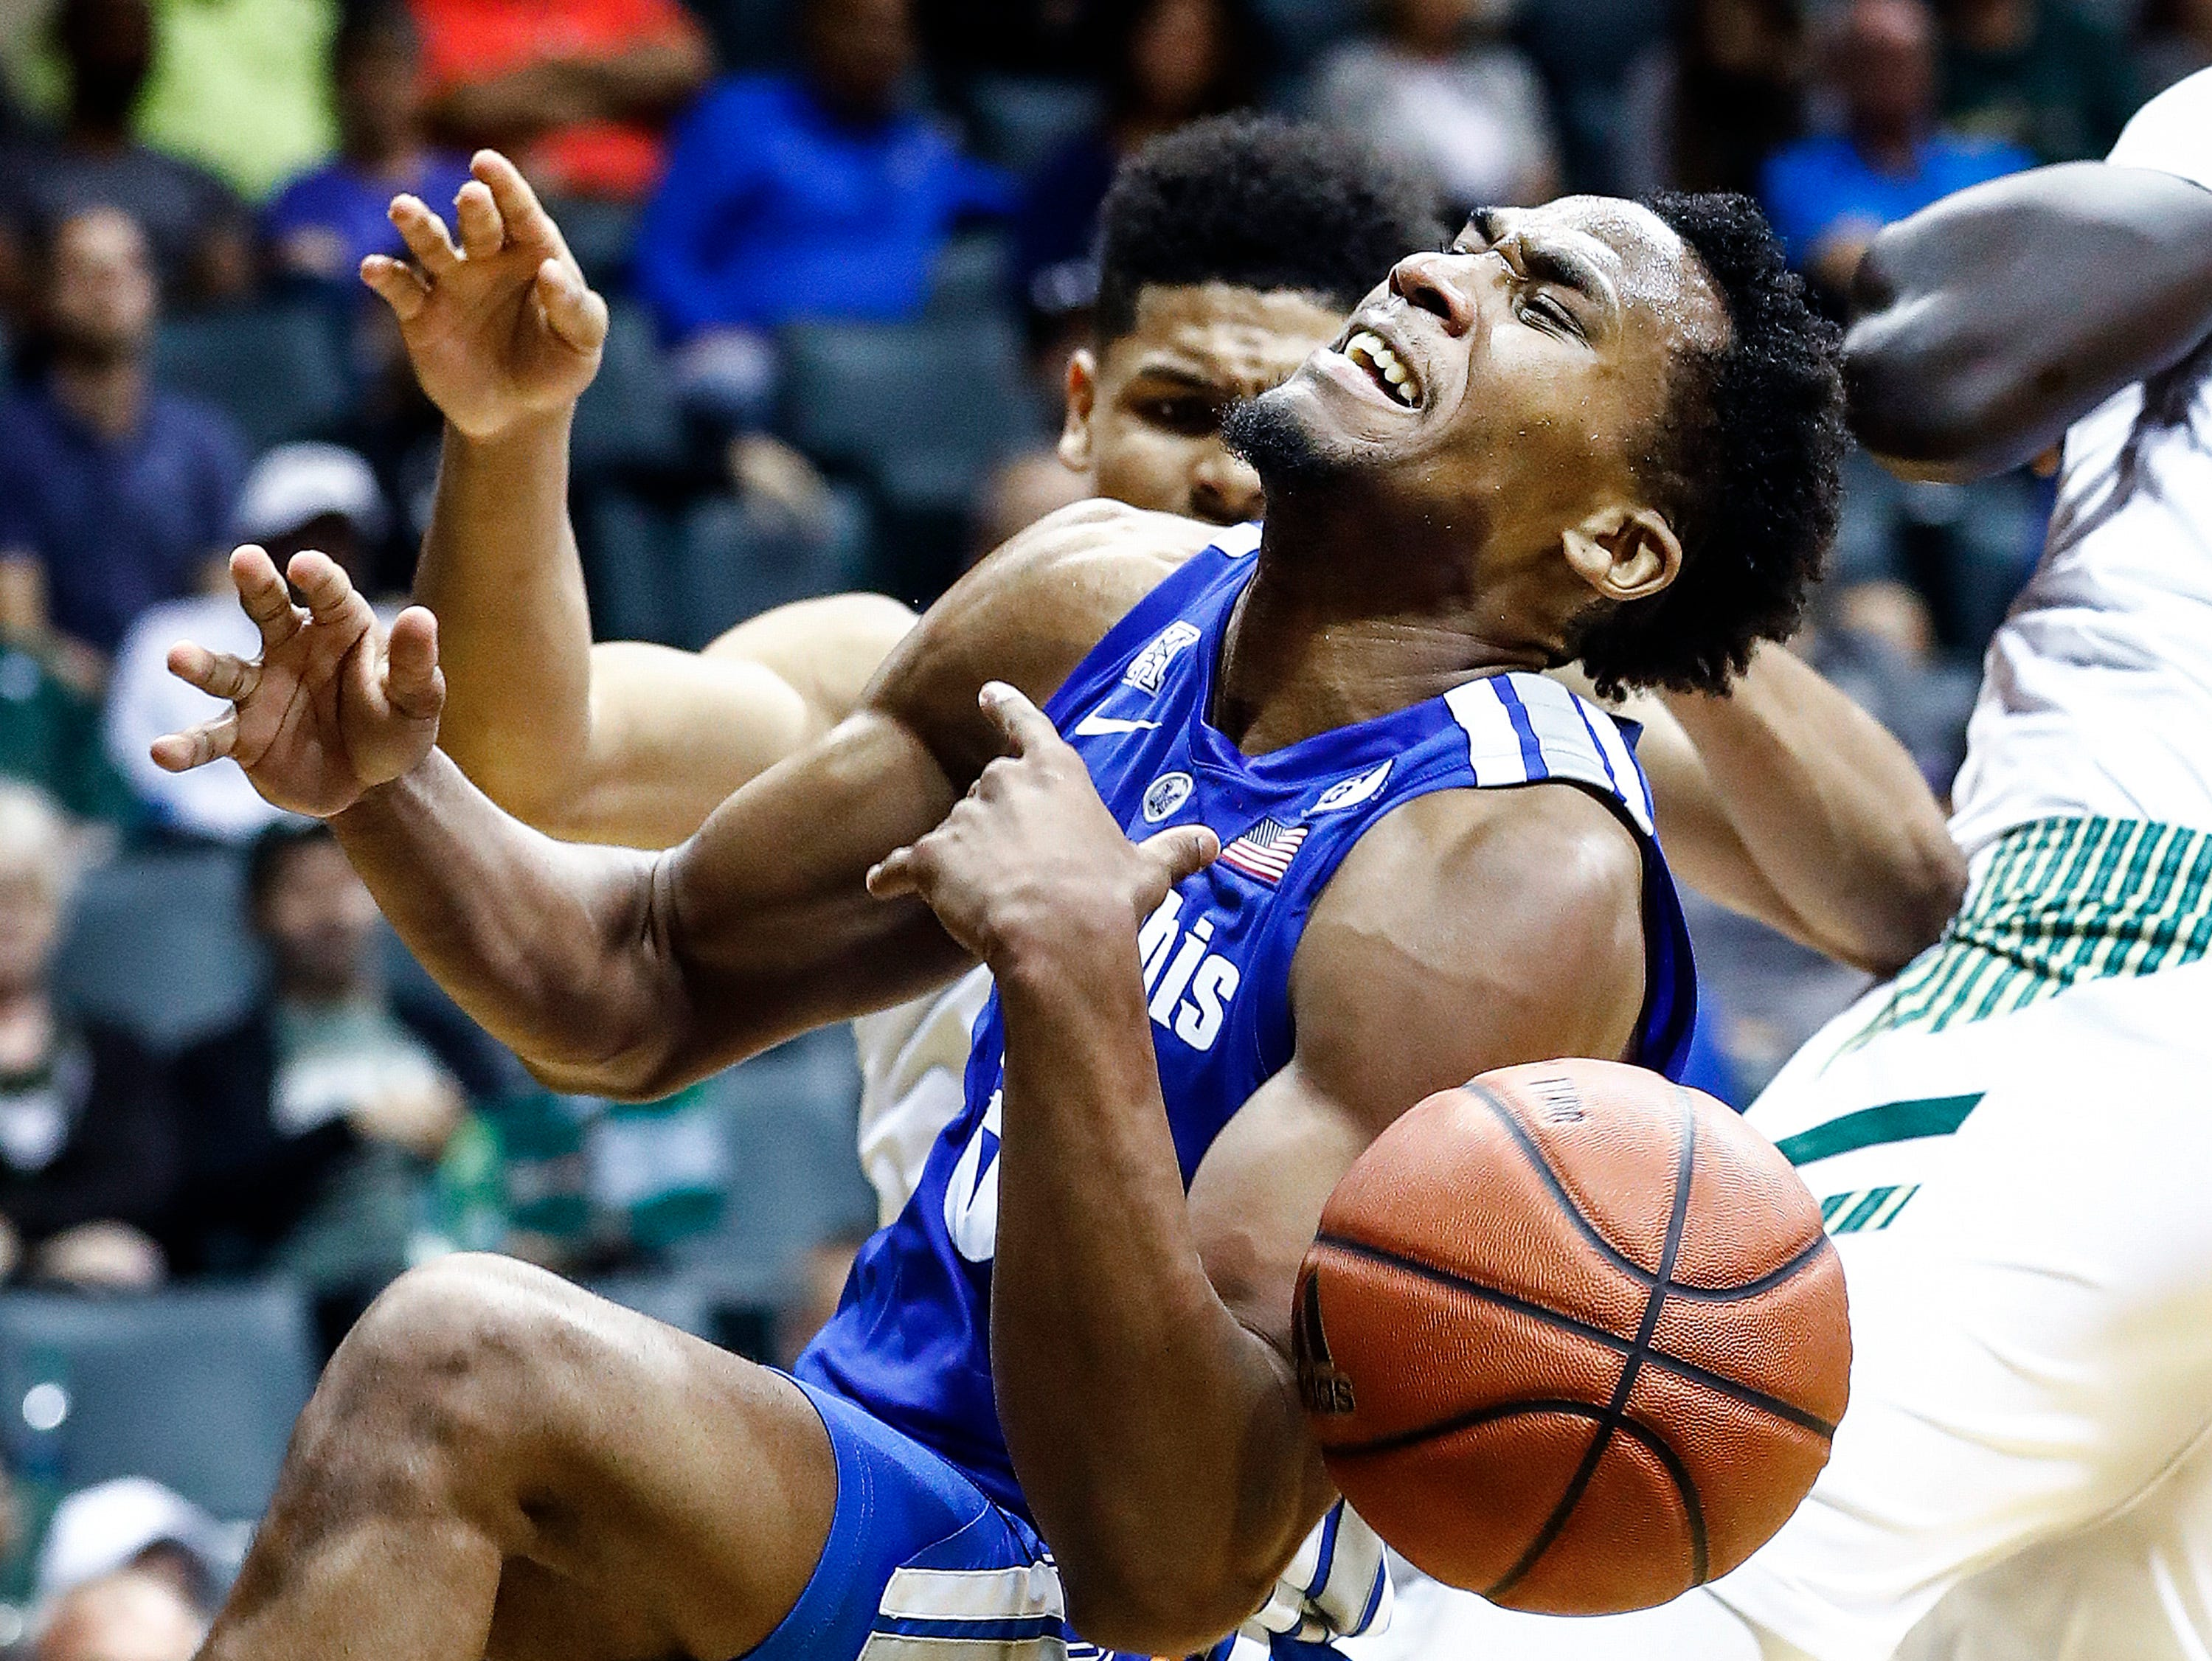 Memphis guard Jeremiah Martin is fouled by USF while grabbing a rebound during action in Tampa, Saturday, February 2, 2019.